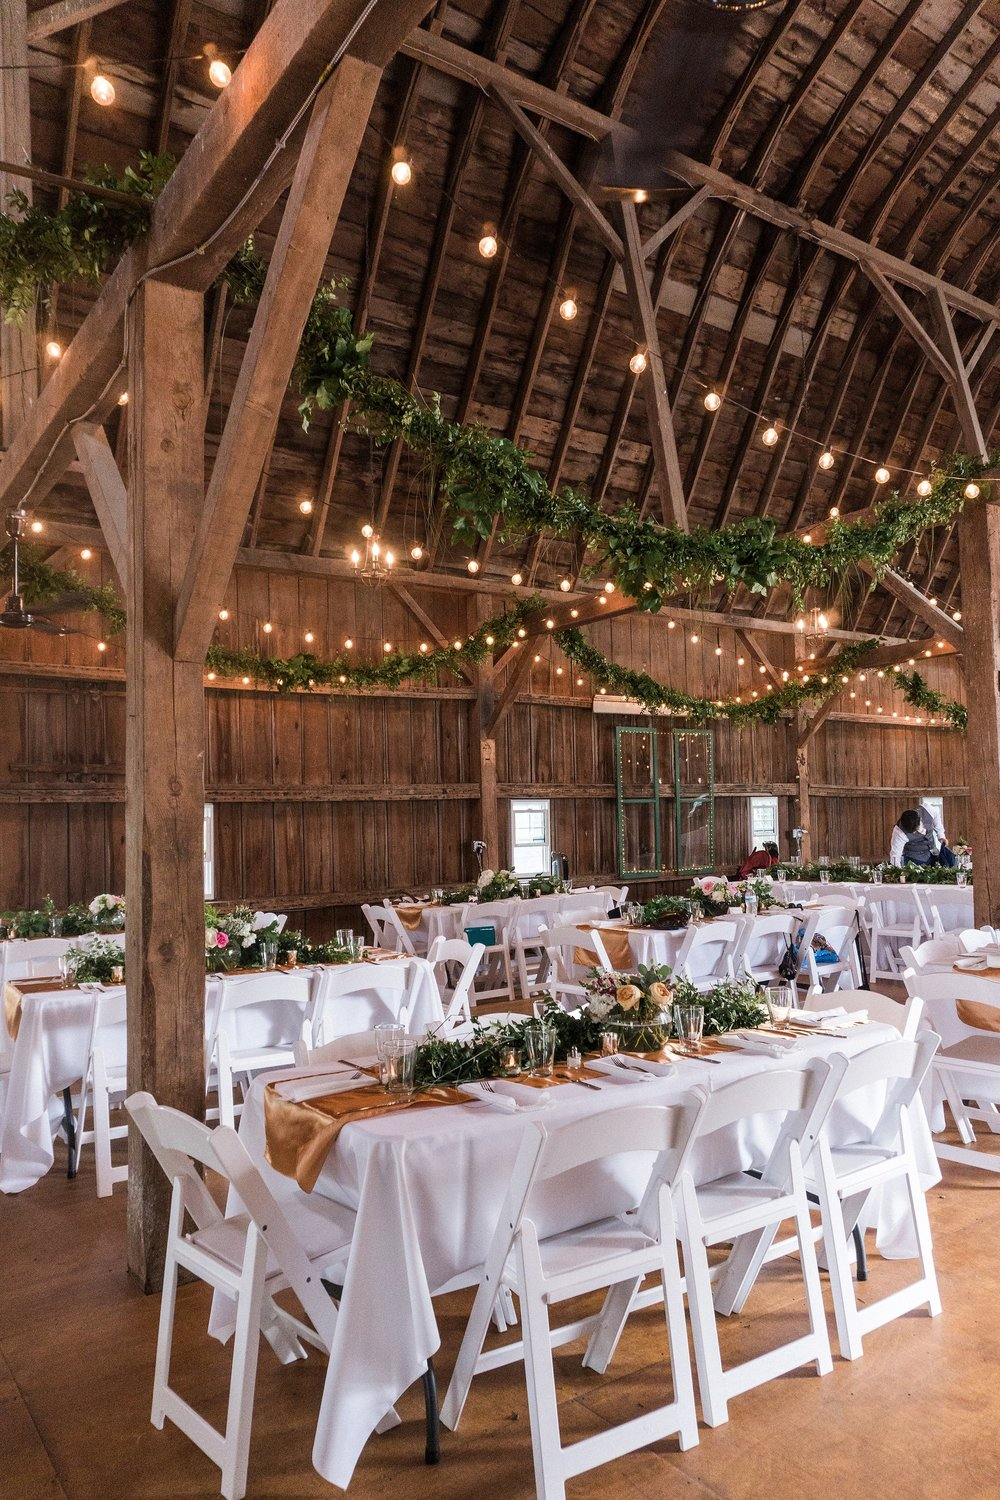 Minnesota wedding reception inside a barn with decor rentals like gold table runners, white linens, garland, and cafe lighting